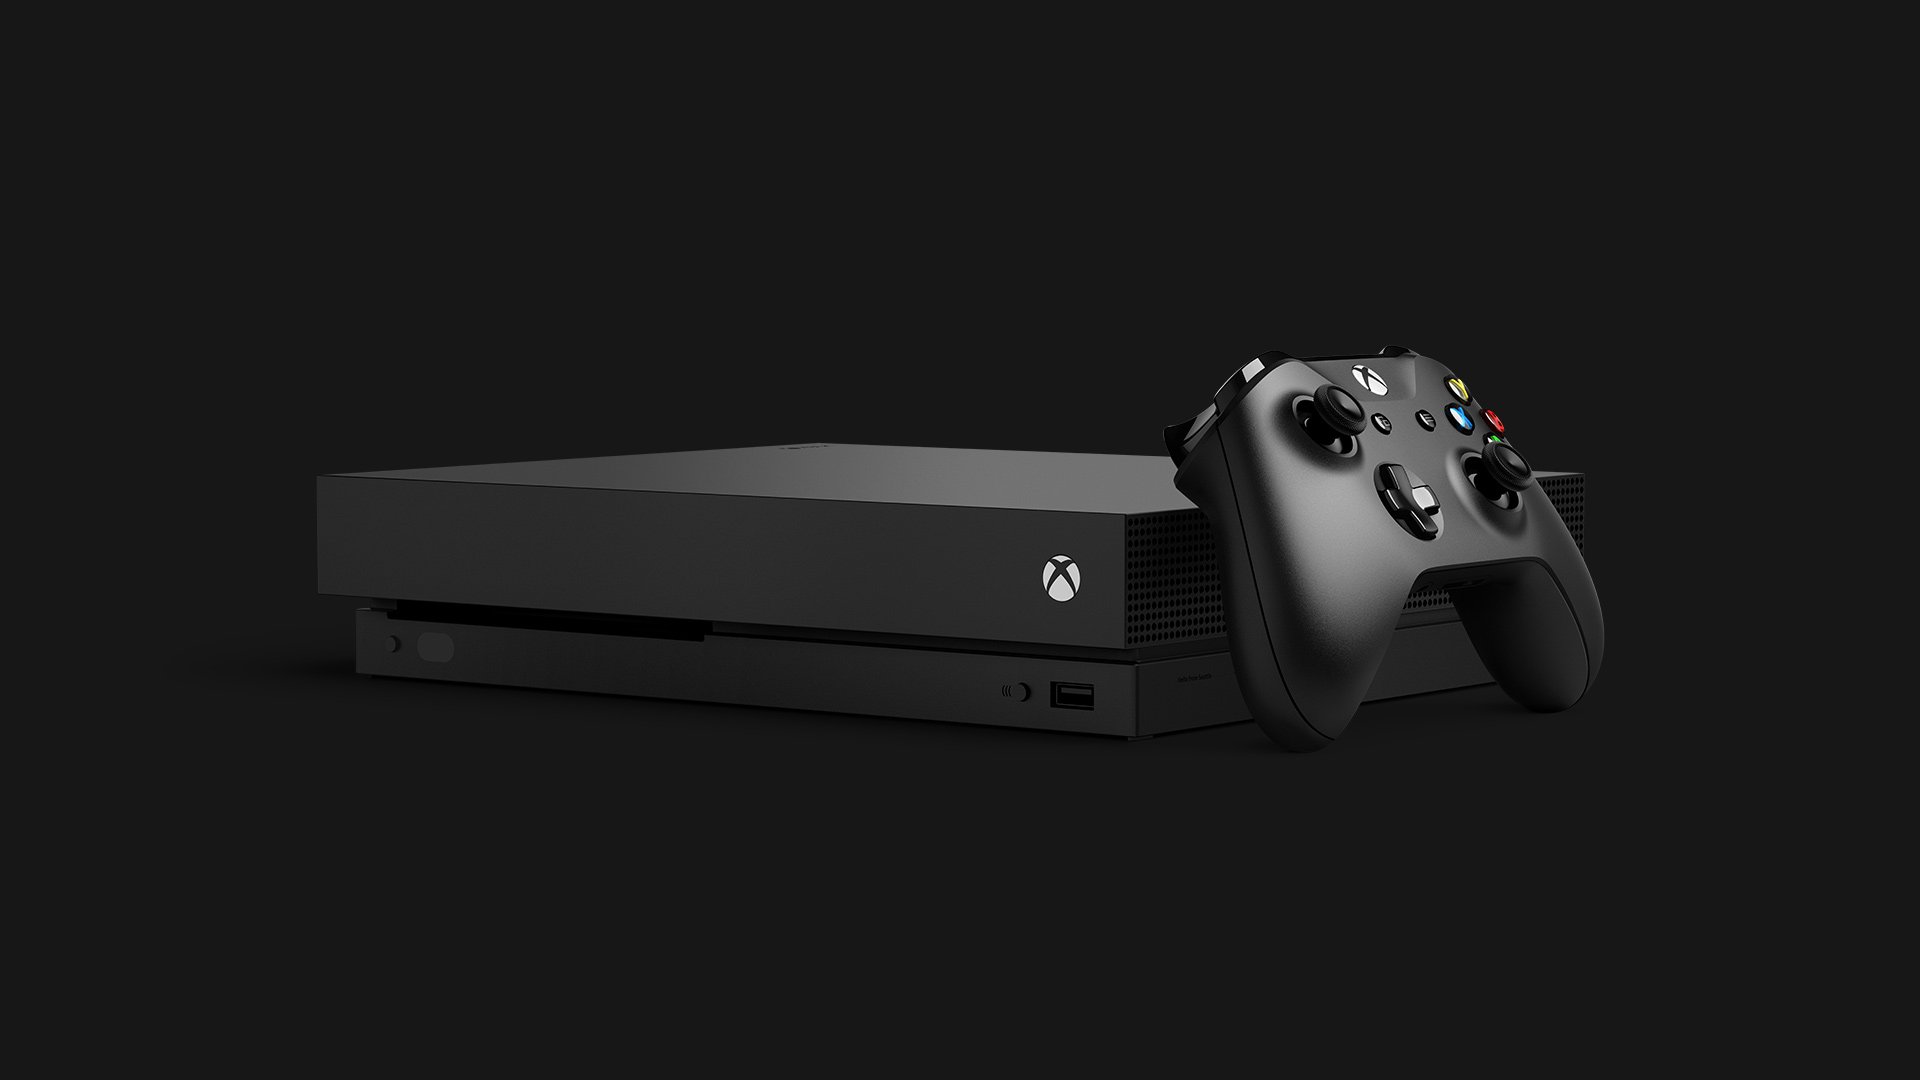 Xbox One X Outsells PS4 Pro on Amazon's Bestsellers List